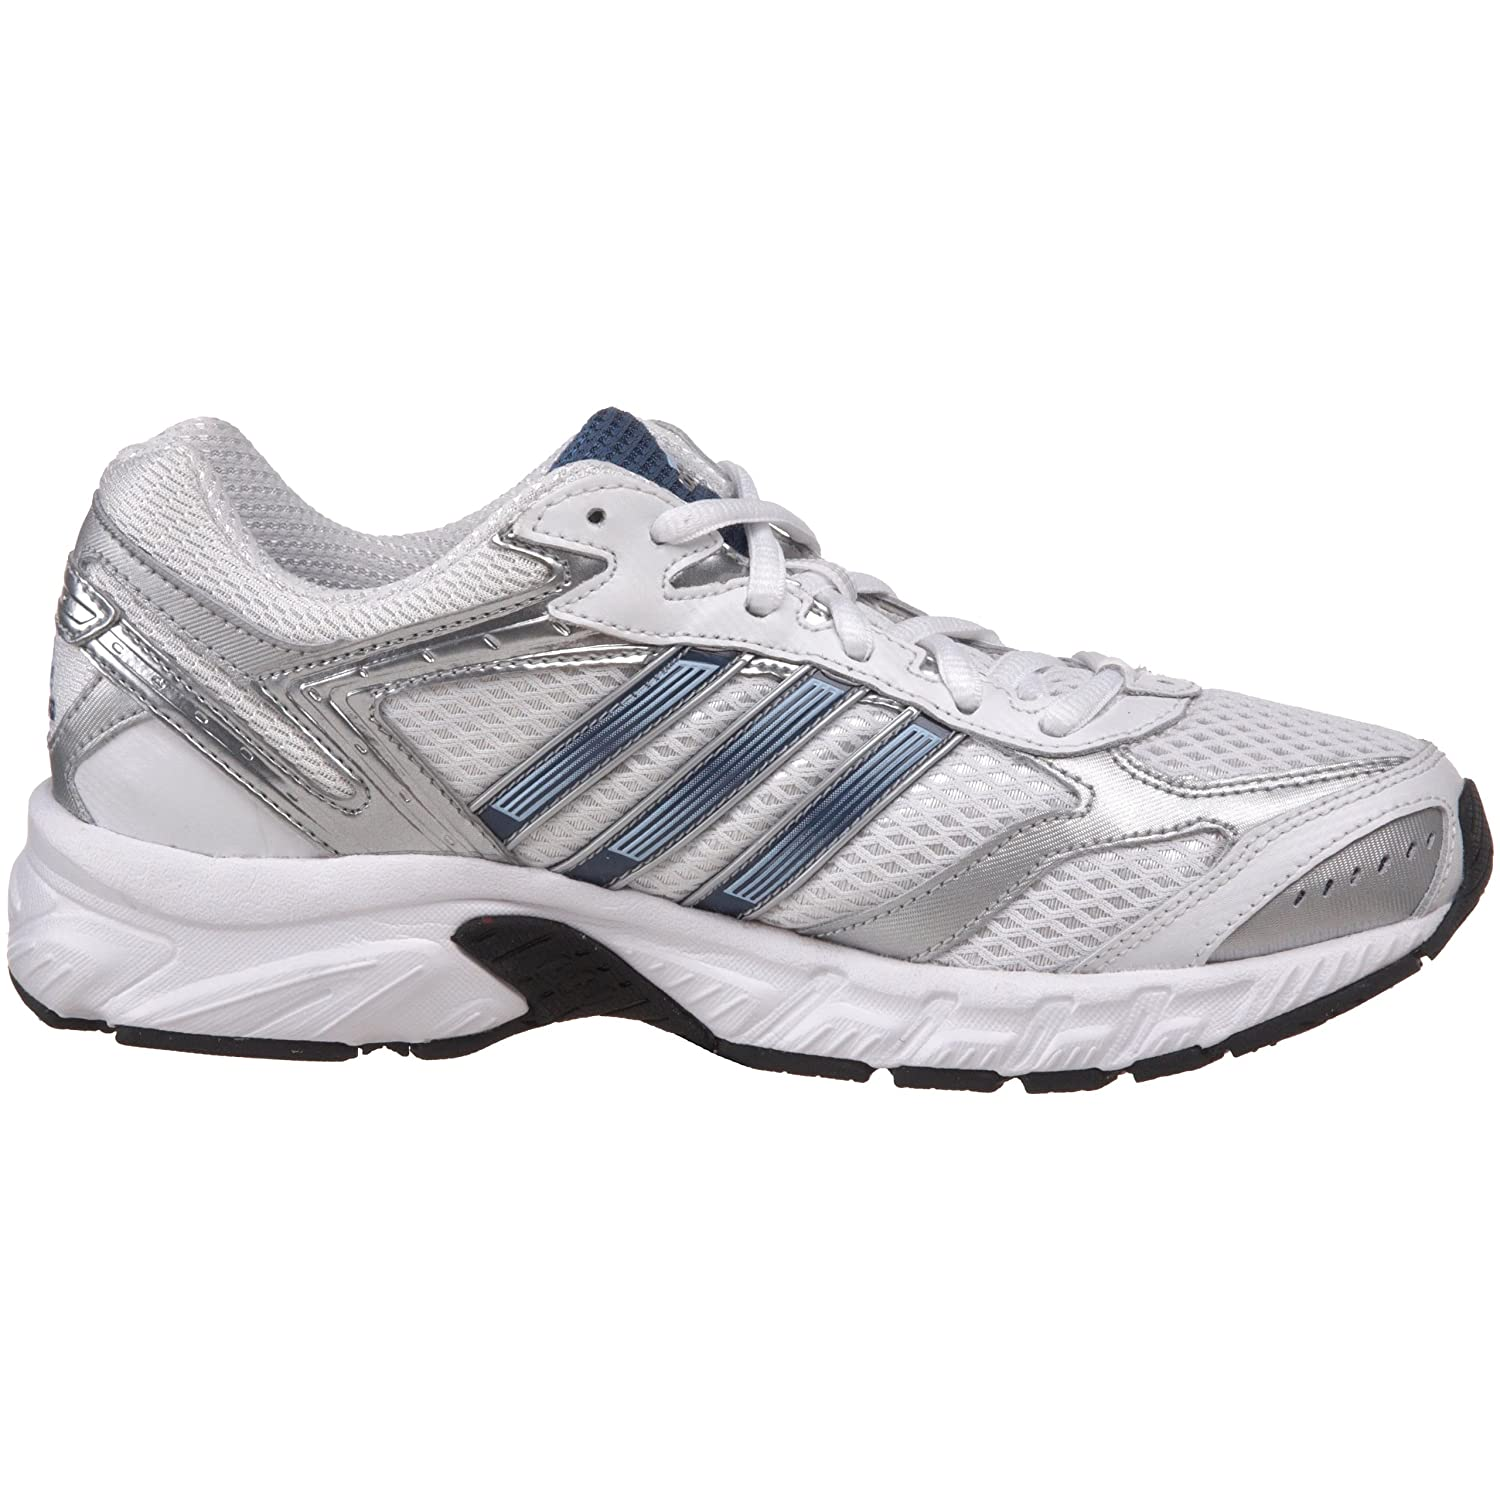 Amazon.com | adidas Womens Duramo 3 Running Shoe, Running White/Vision Blue/Metallic Silver, 8 M US | Road Running